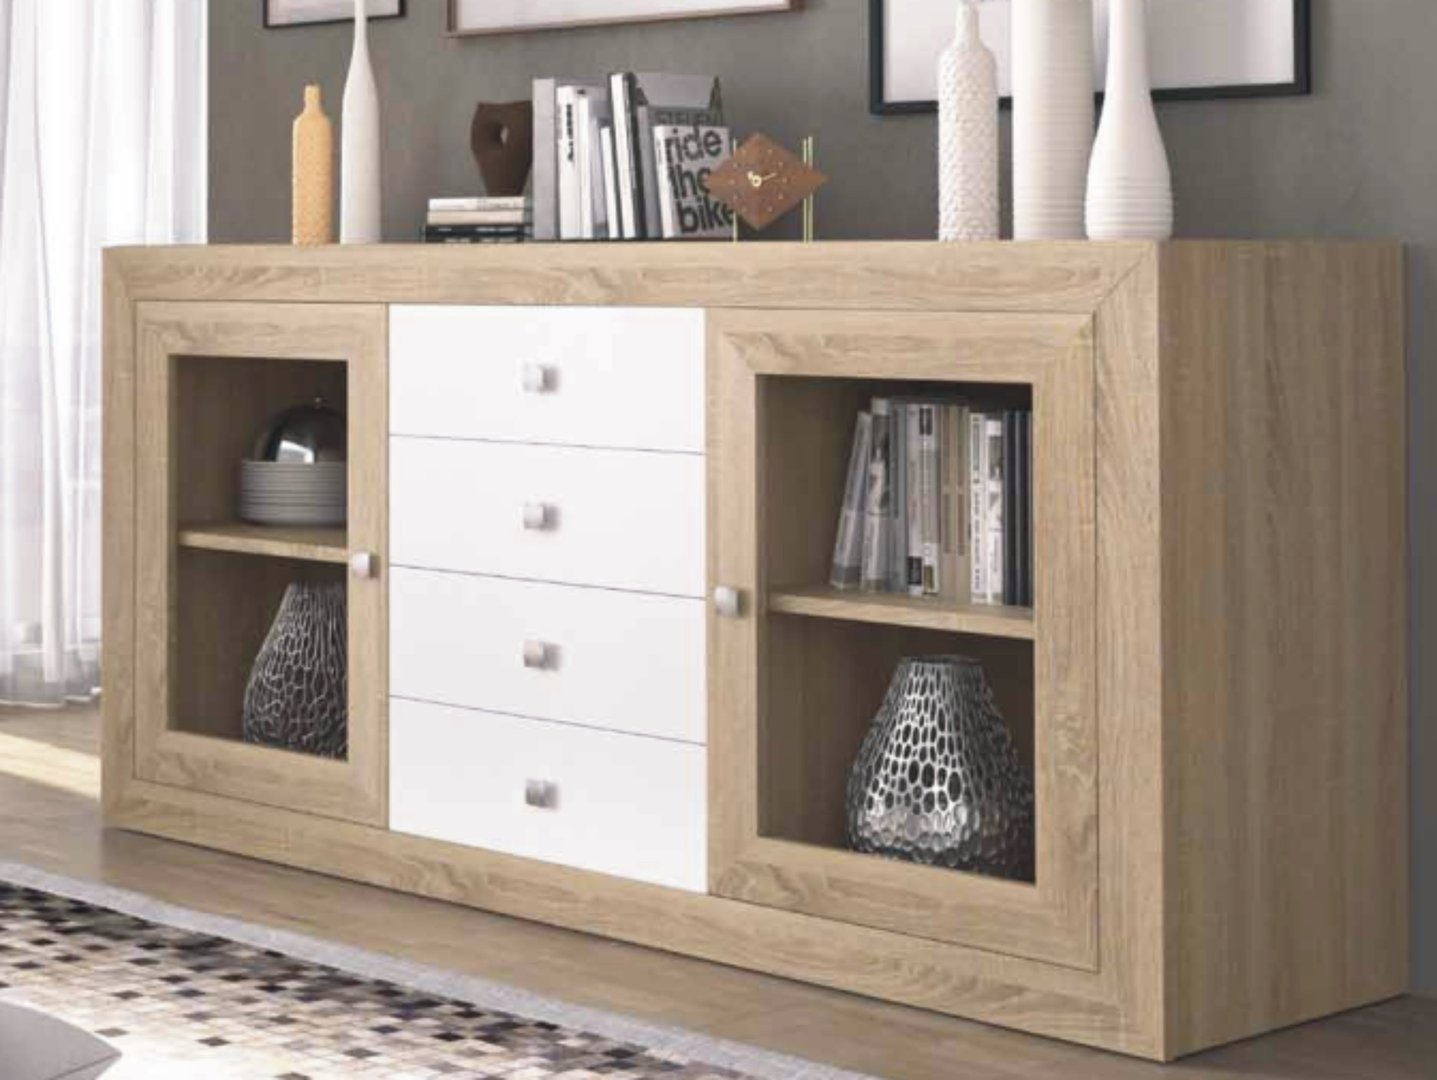 Praga Large Sideboard Cambrian